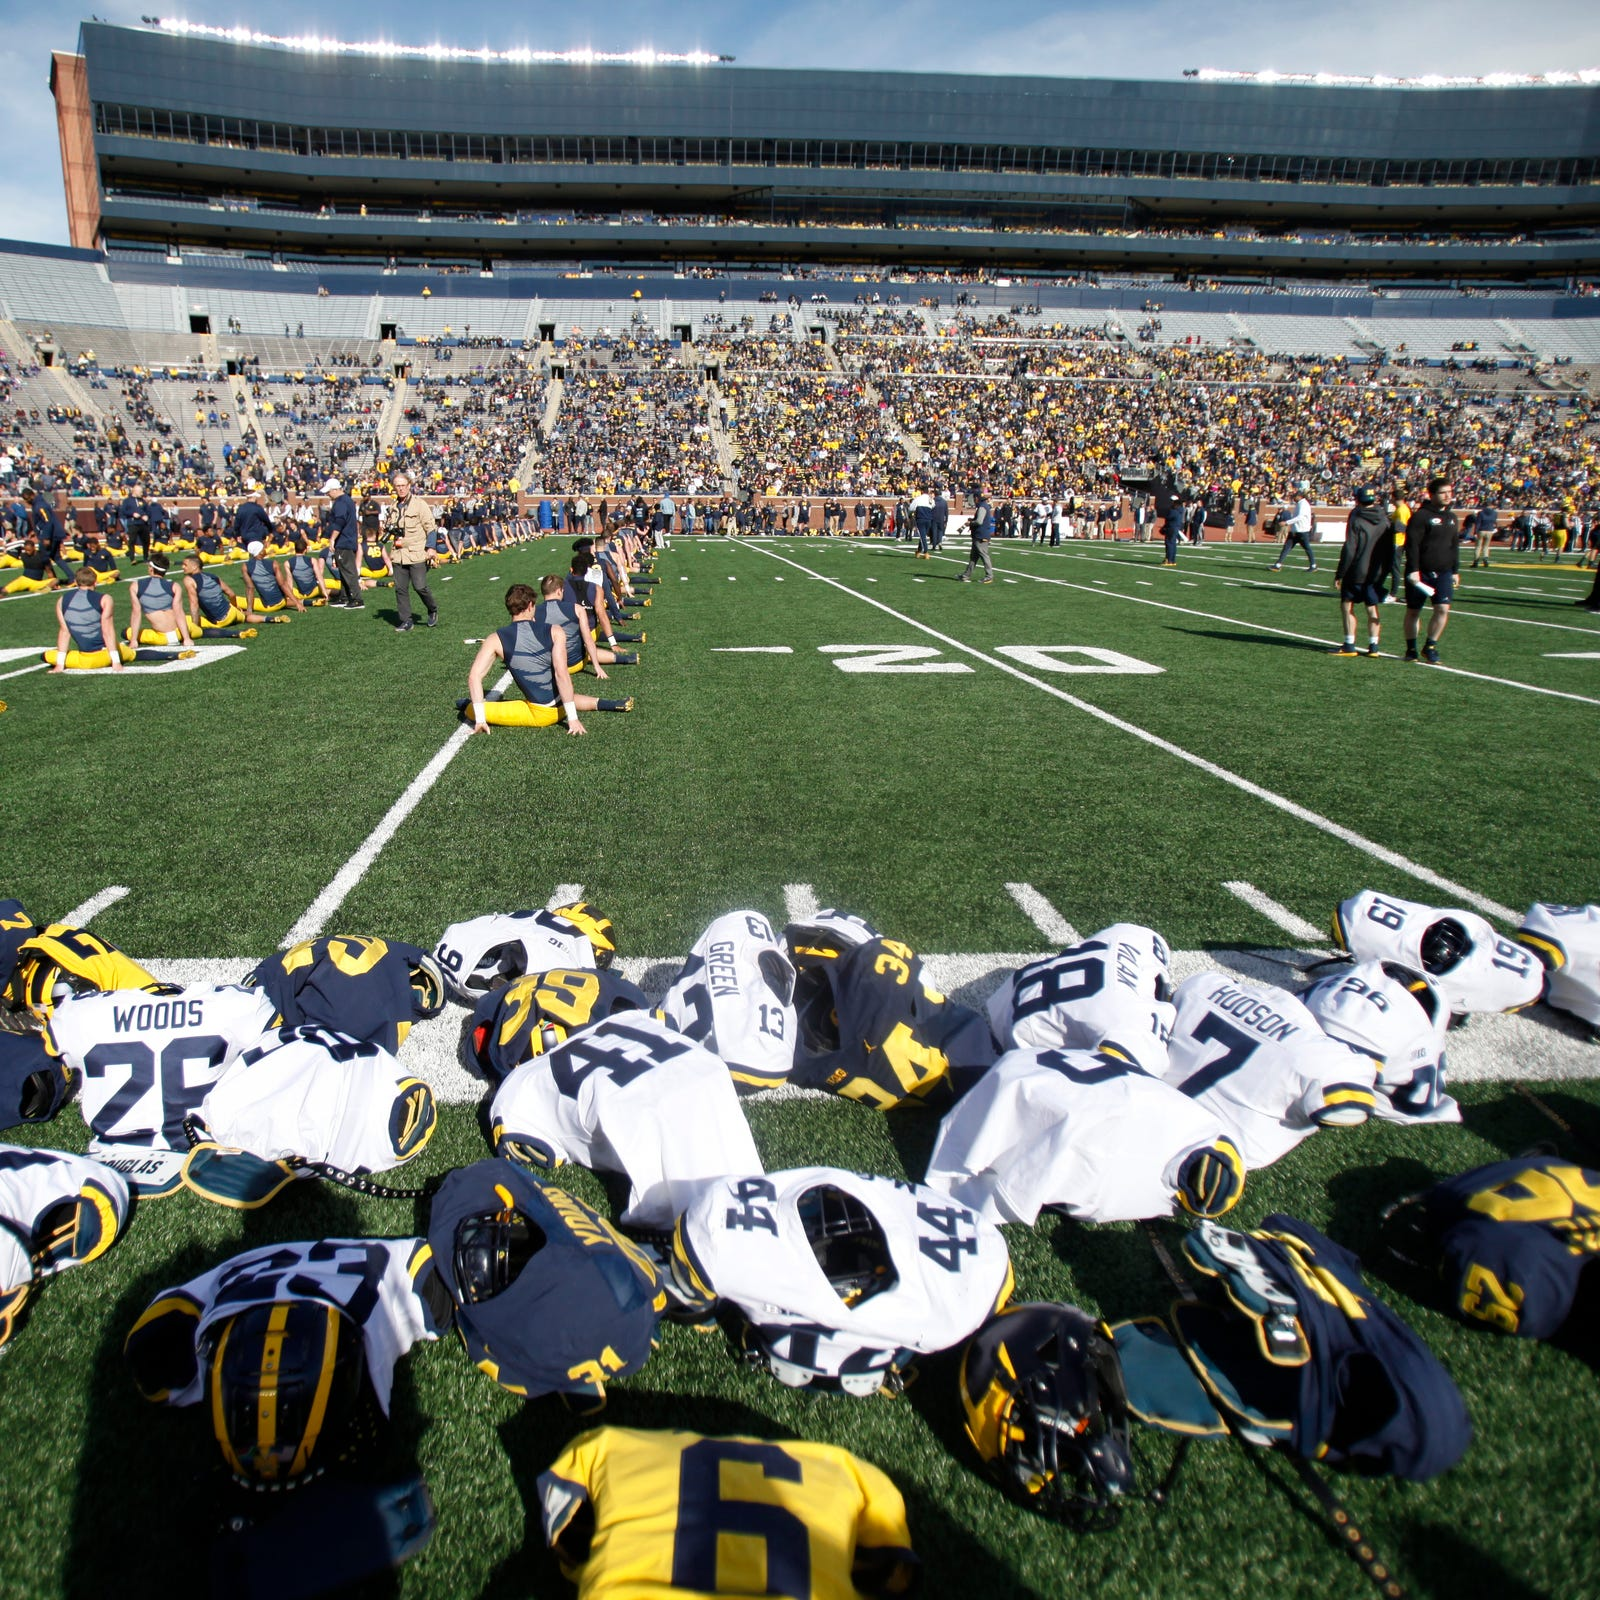 Michigan football recruiting: 2020 receiver Kalil Branham decommits